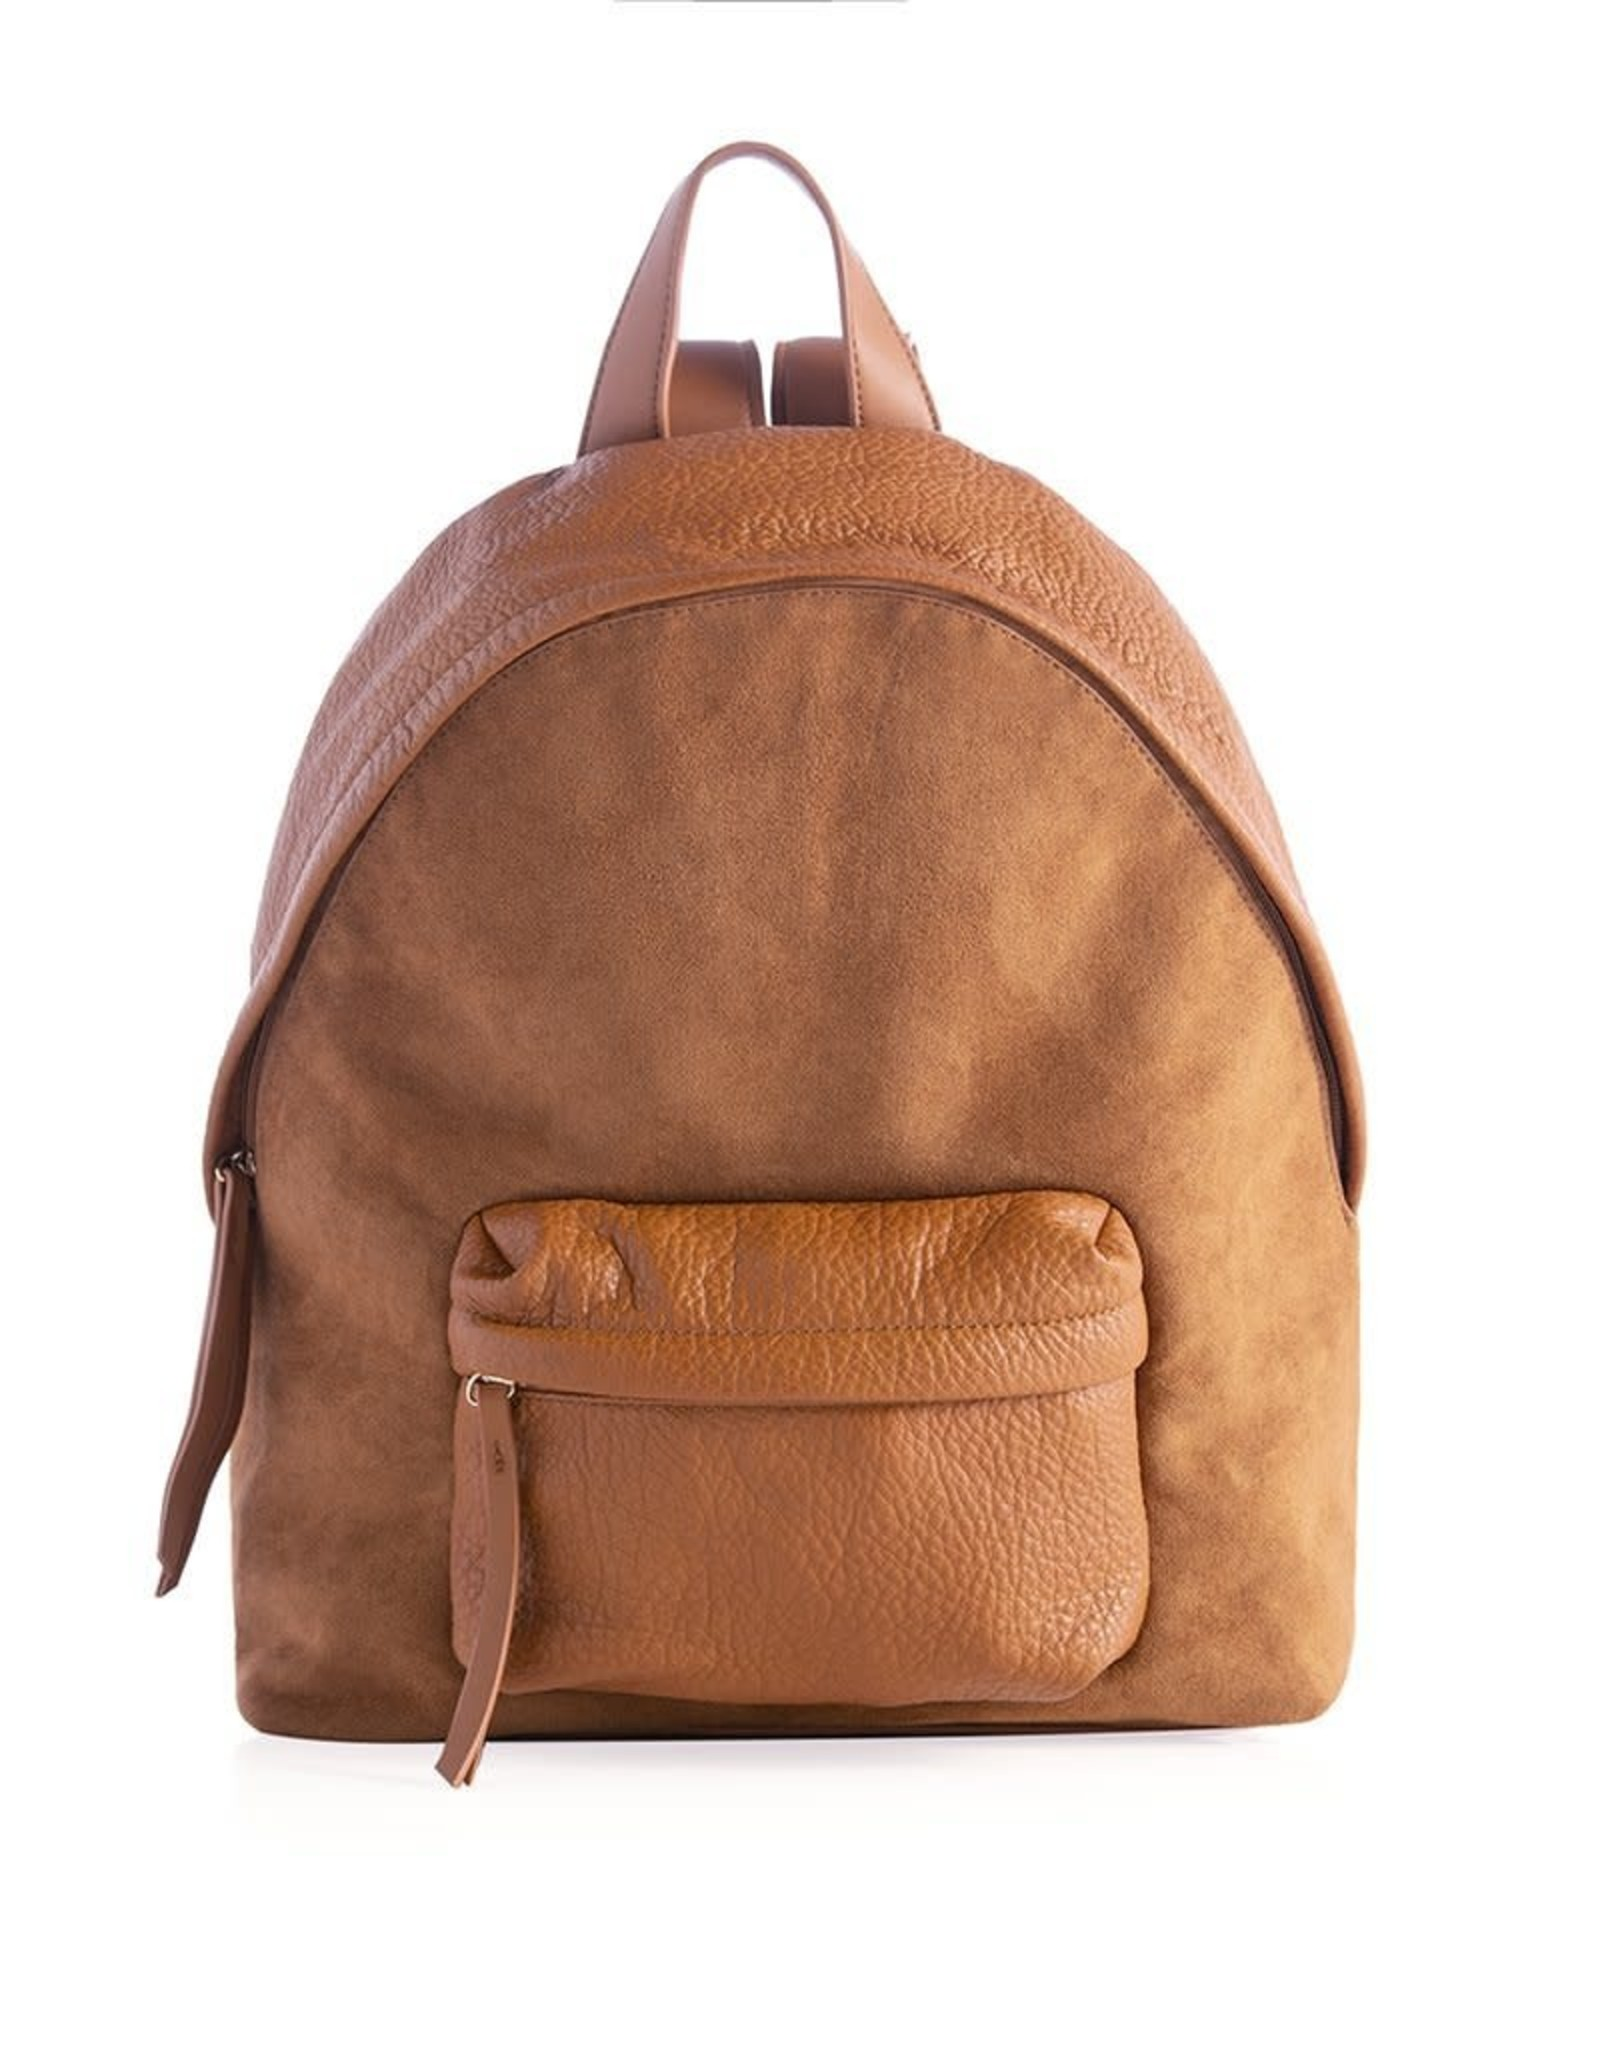 The Arden Backpack